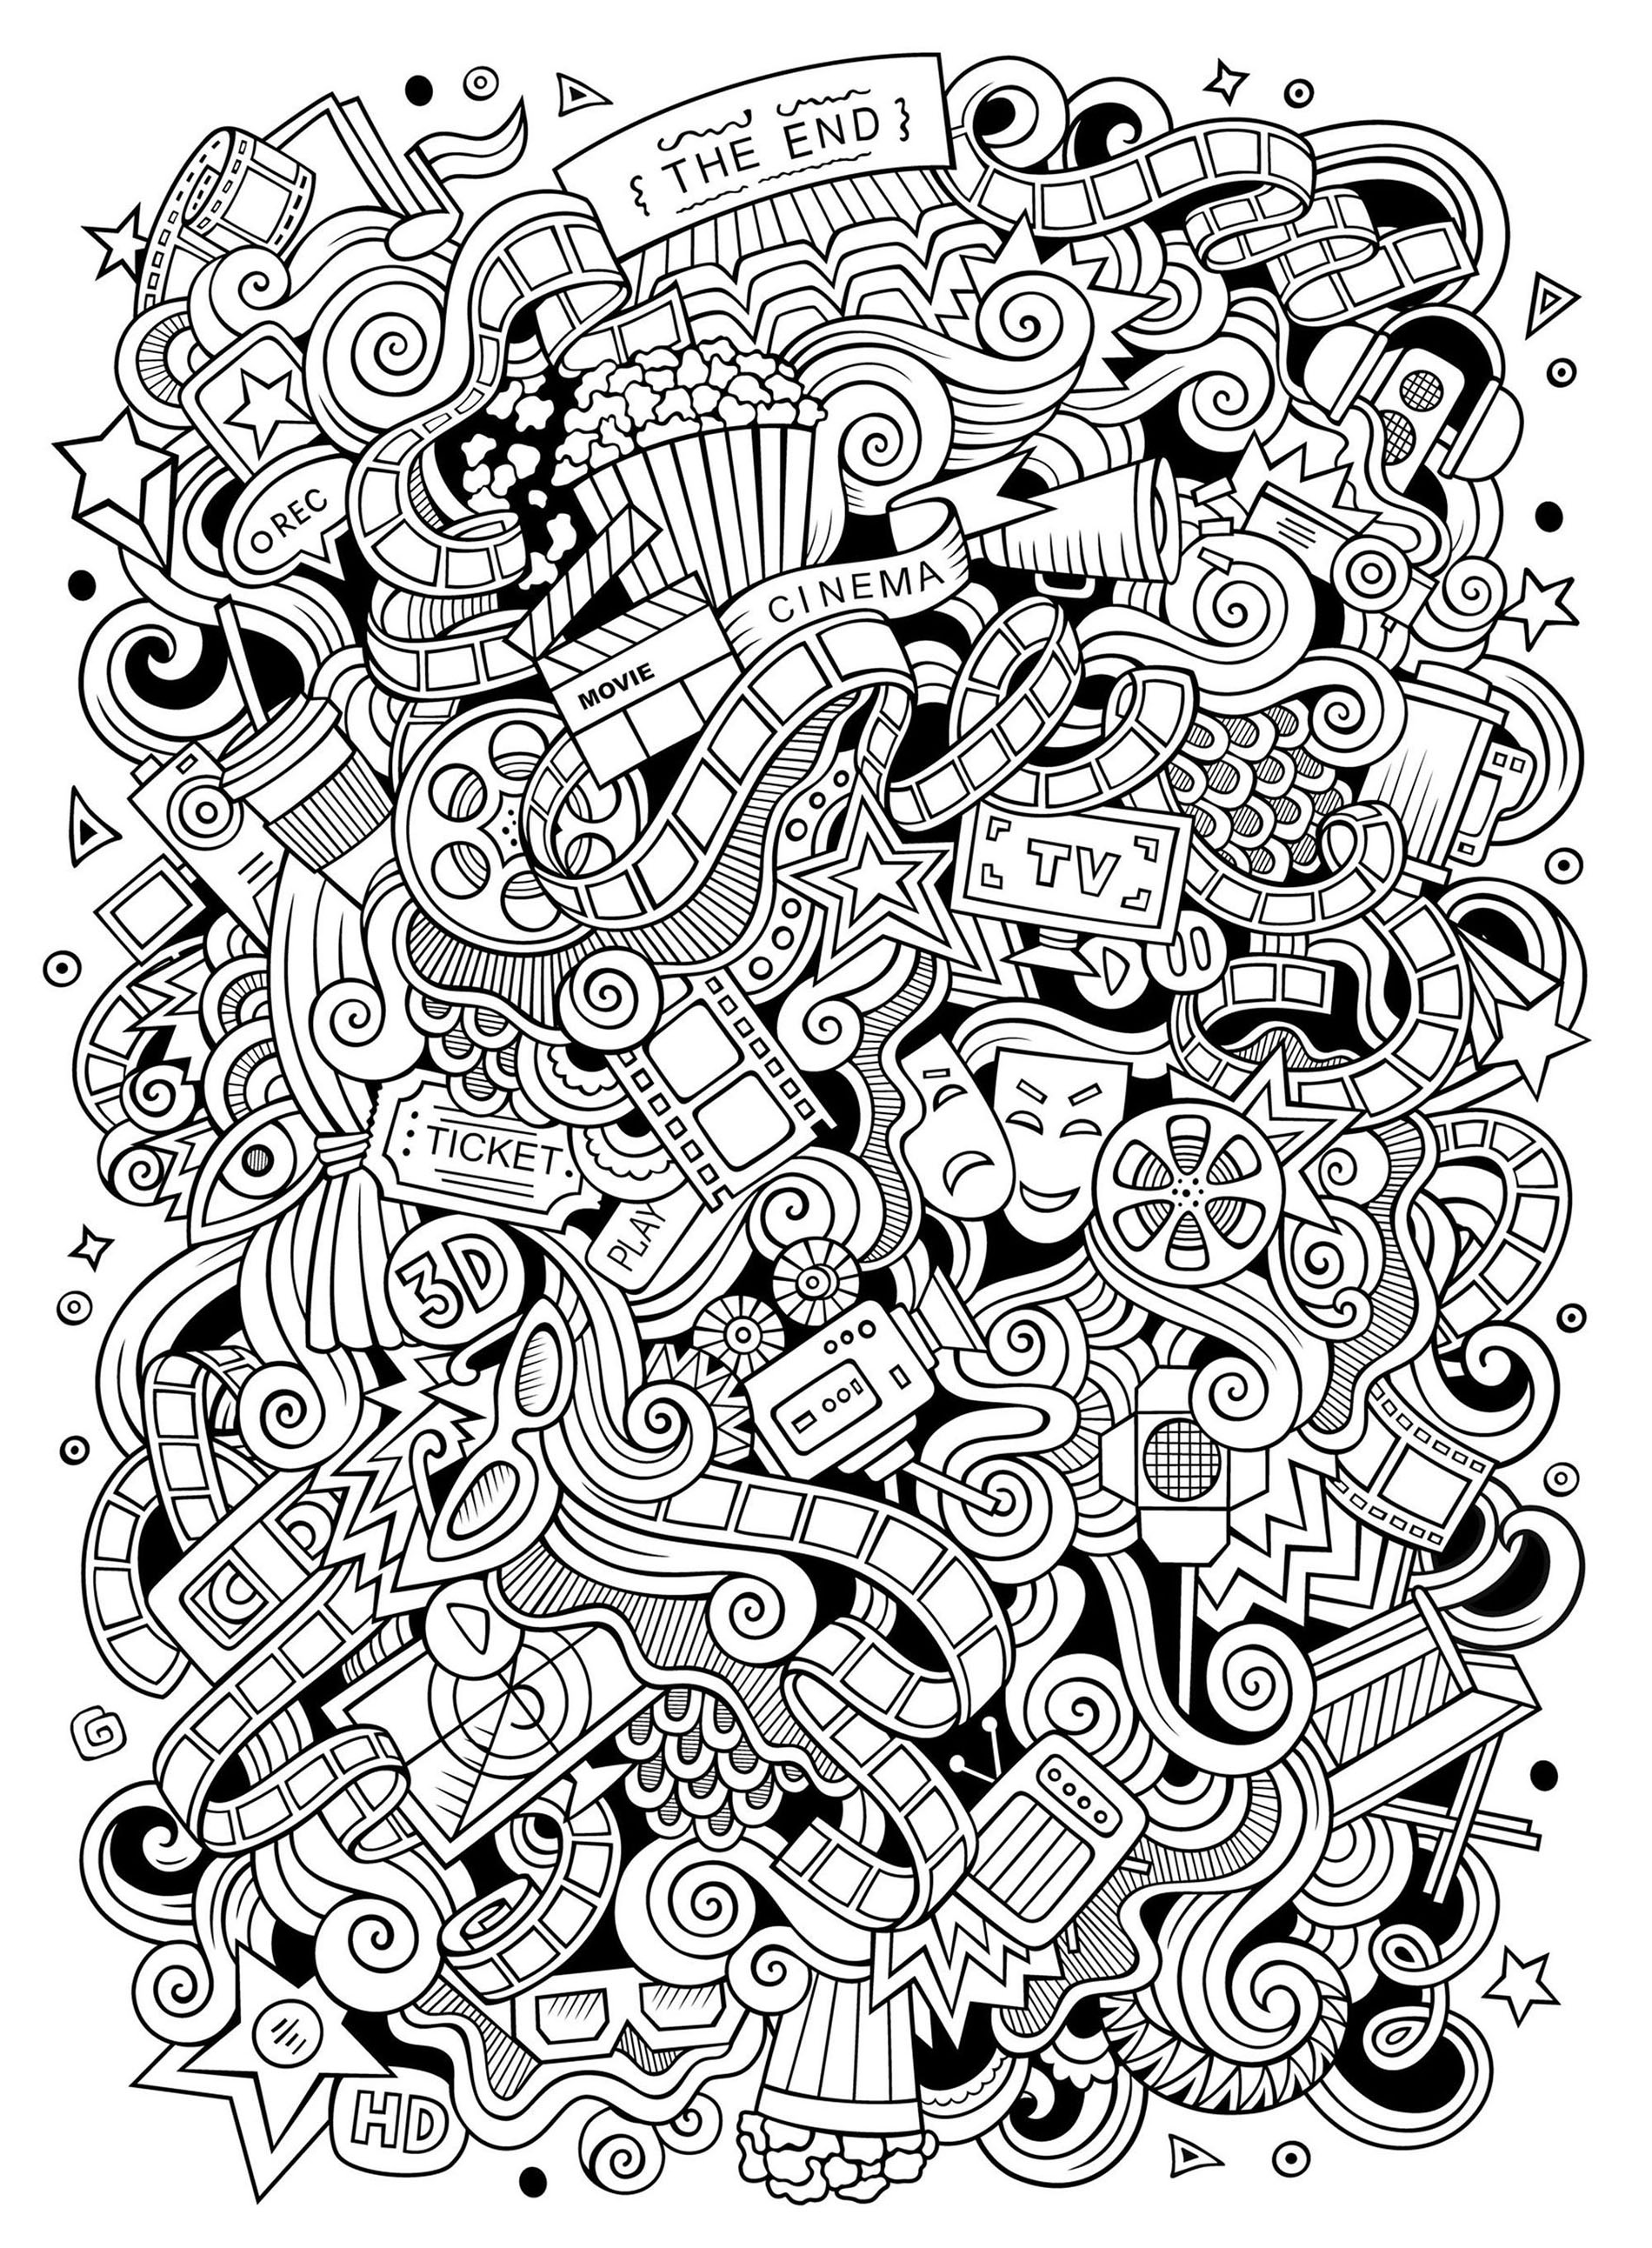 kids art coloring pages doodle art to print for free doodle art kids coloring pages pages kids art coloring